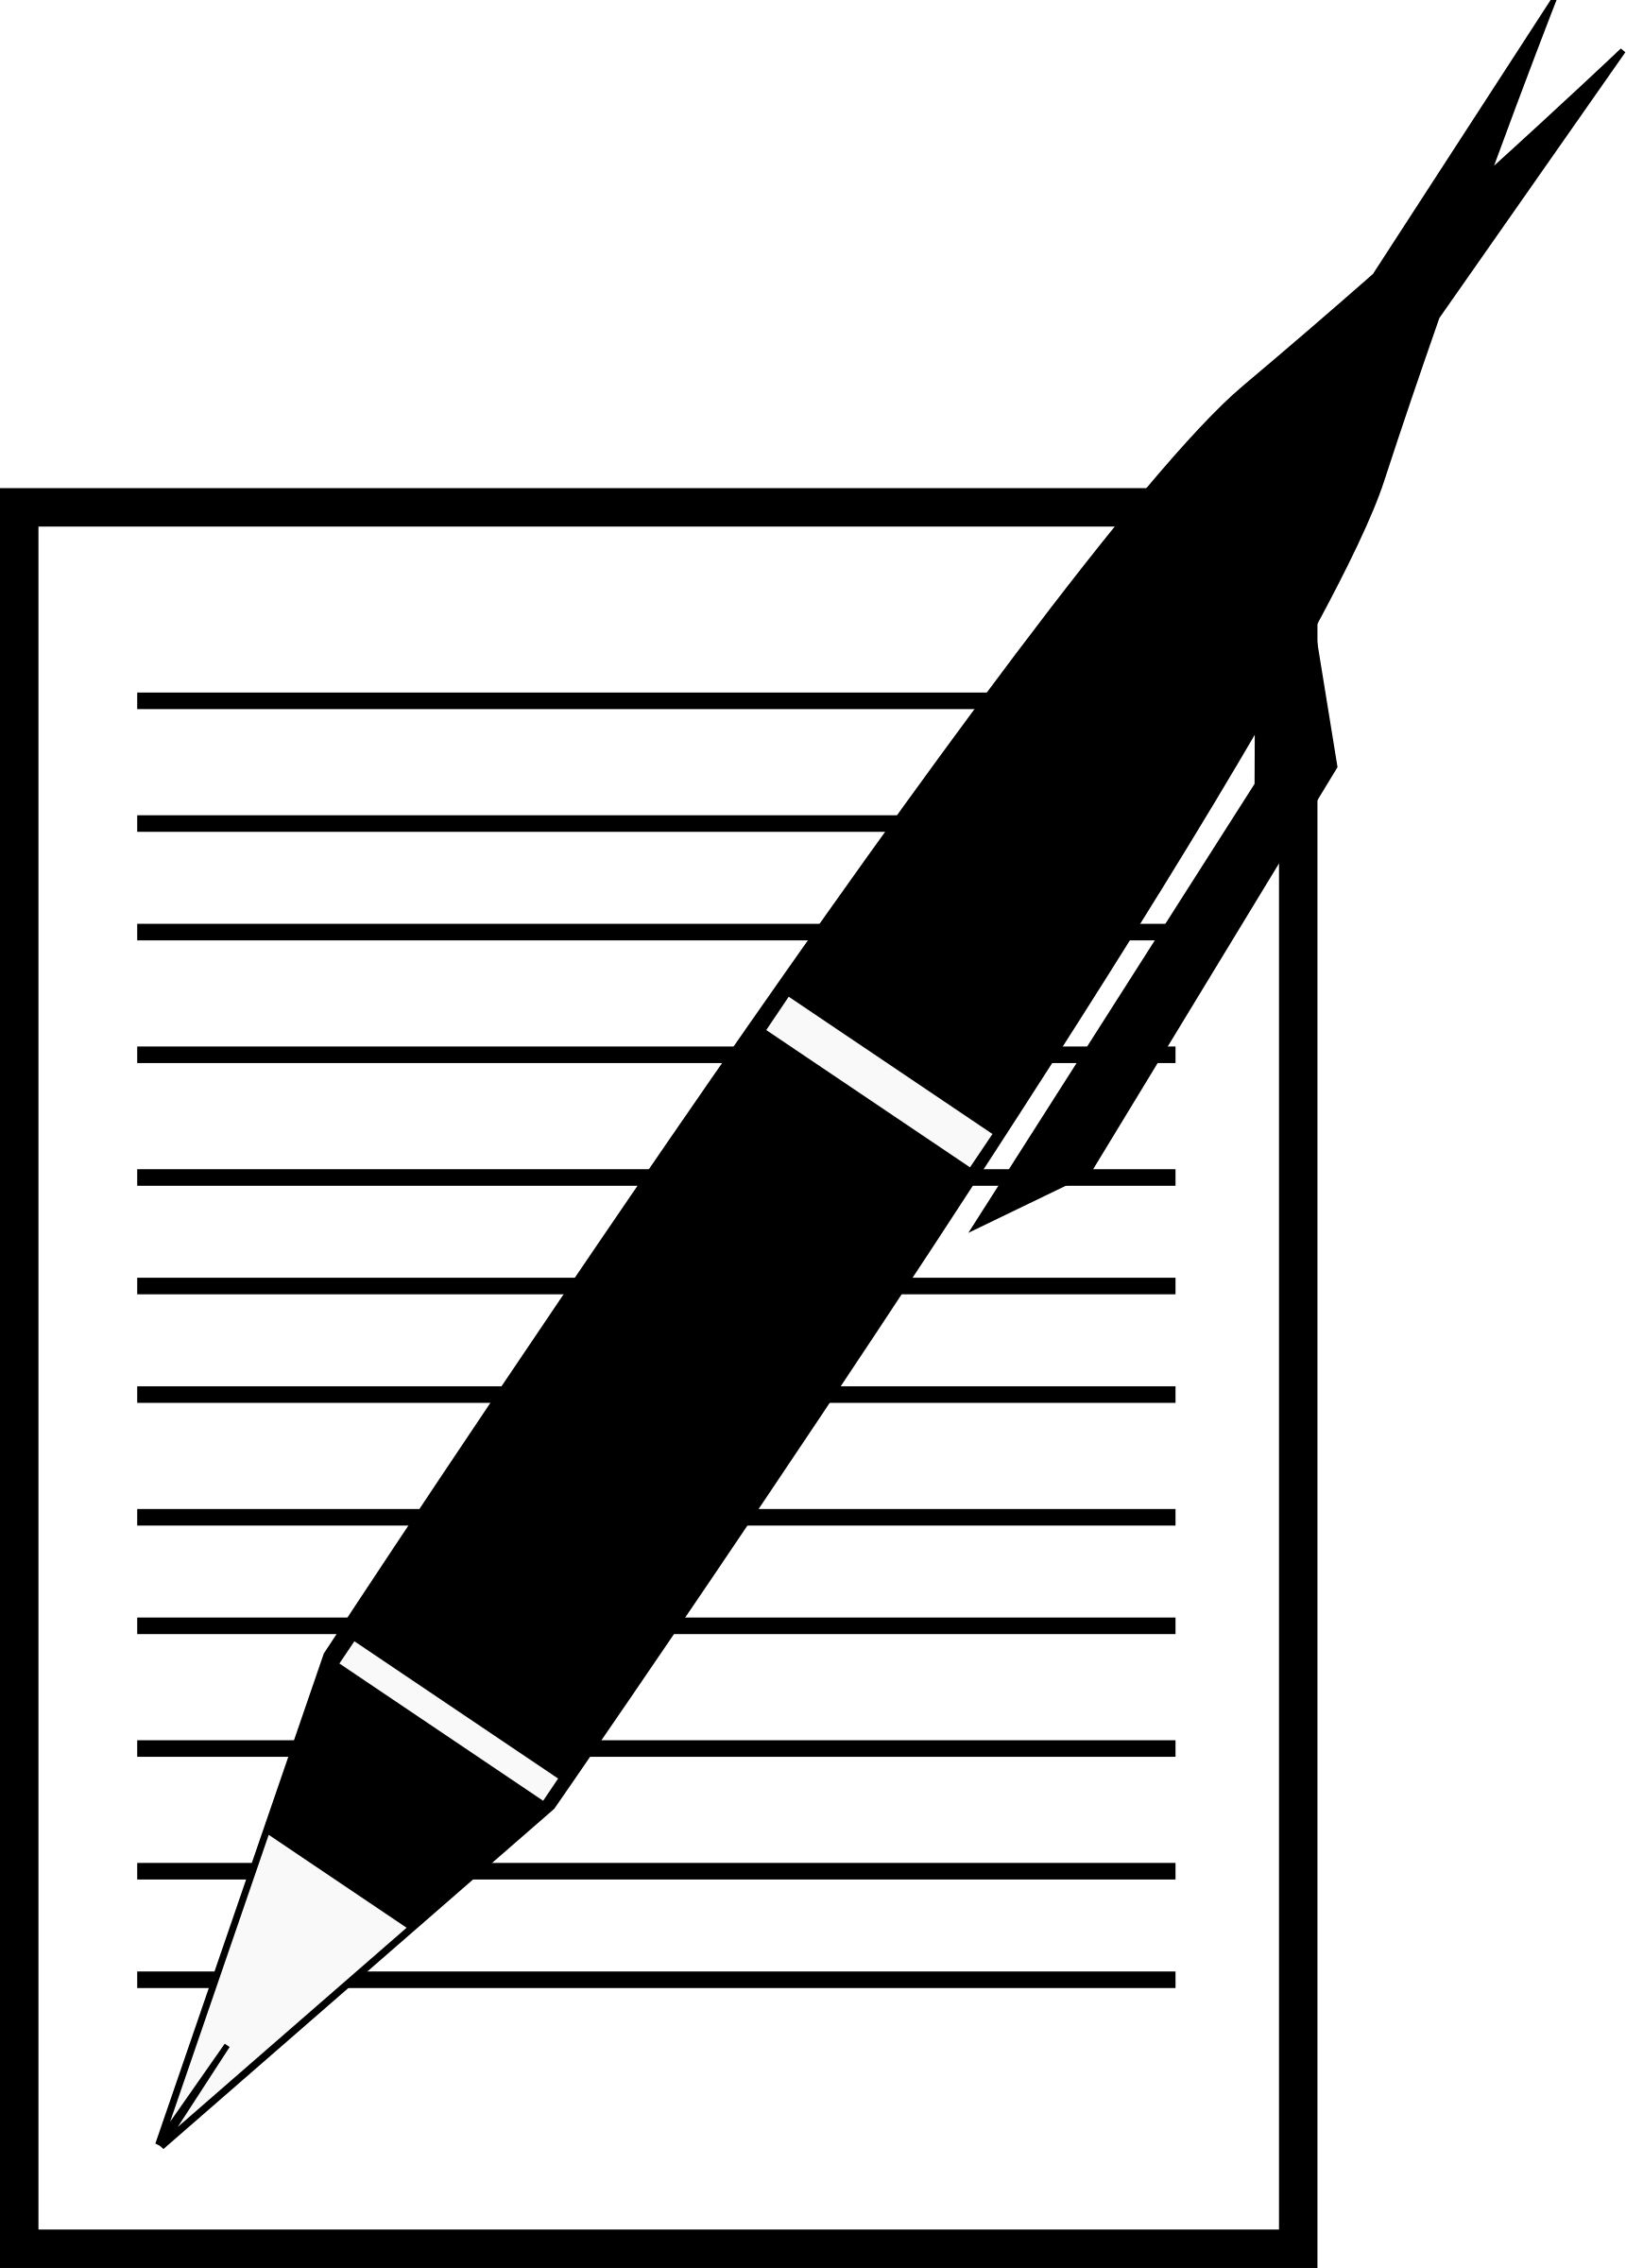 Note clipart pen and paper. Black white letters format